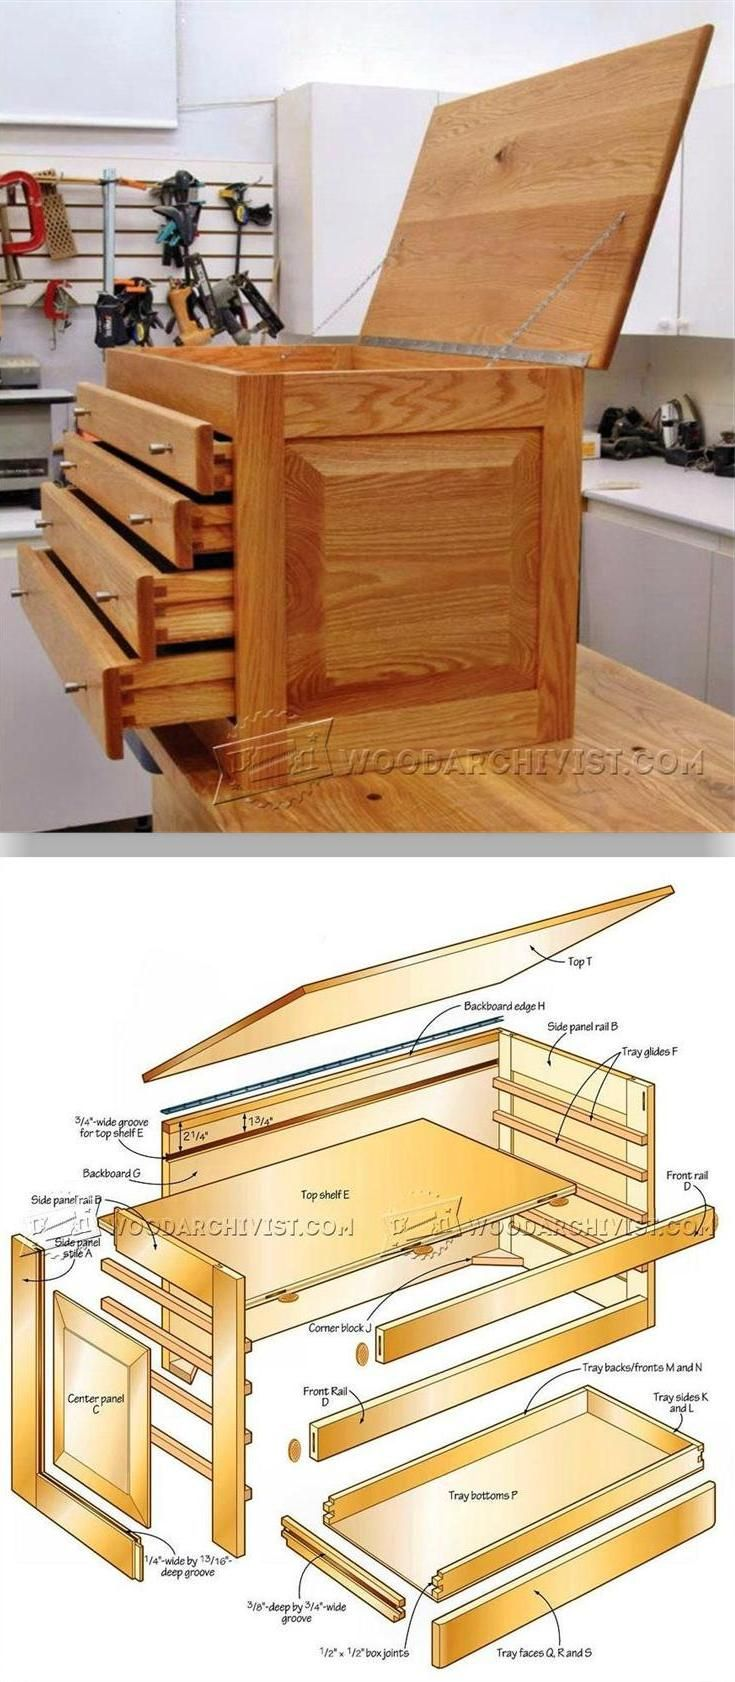 336 Best Opslagstavlen Images On Pinterest Carpentry Wood Simple Moonshine Still Diagram Carvers Tool Chest Plans Workshop Solutions Projects Tips And Tricks Woodarchivistcom